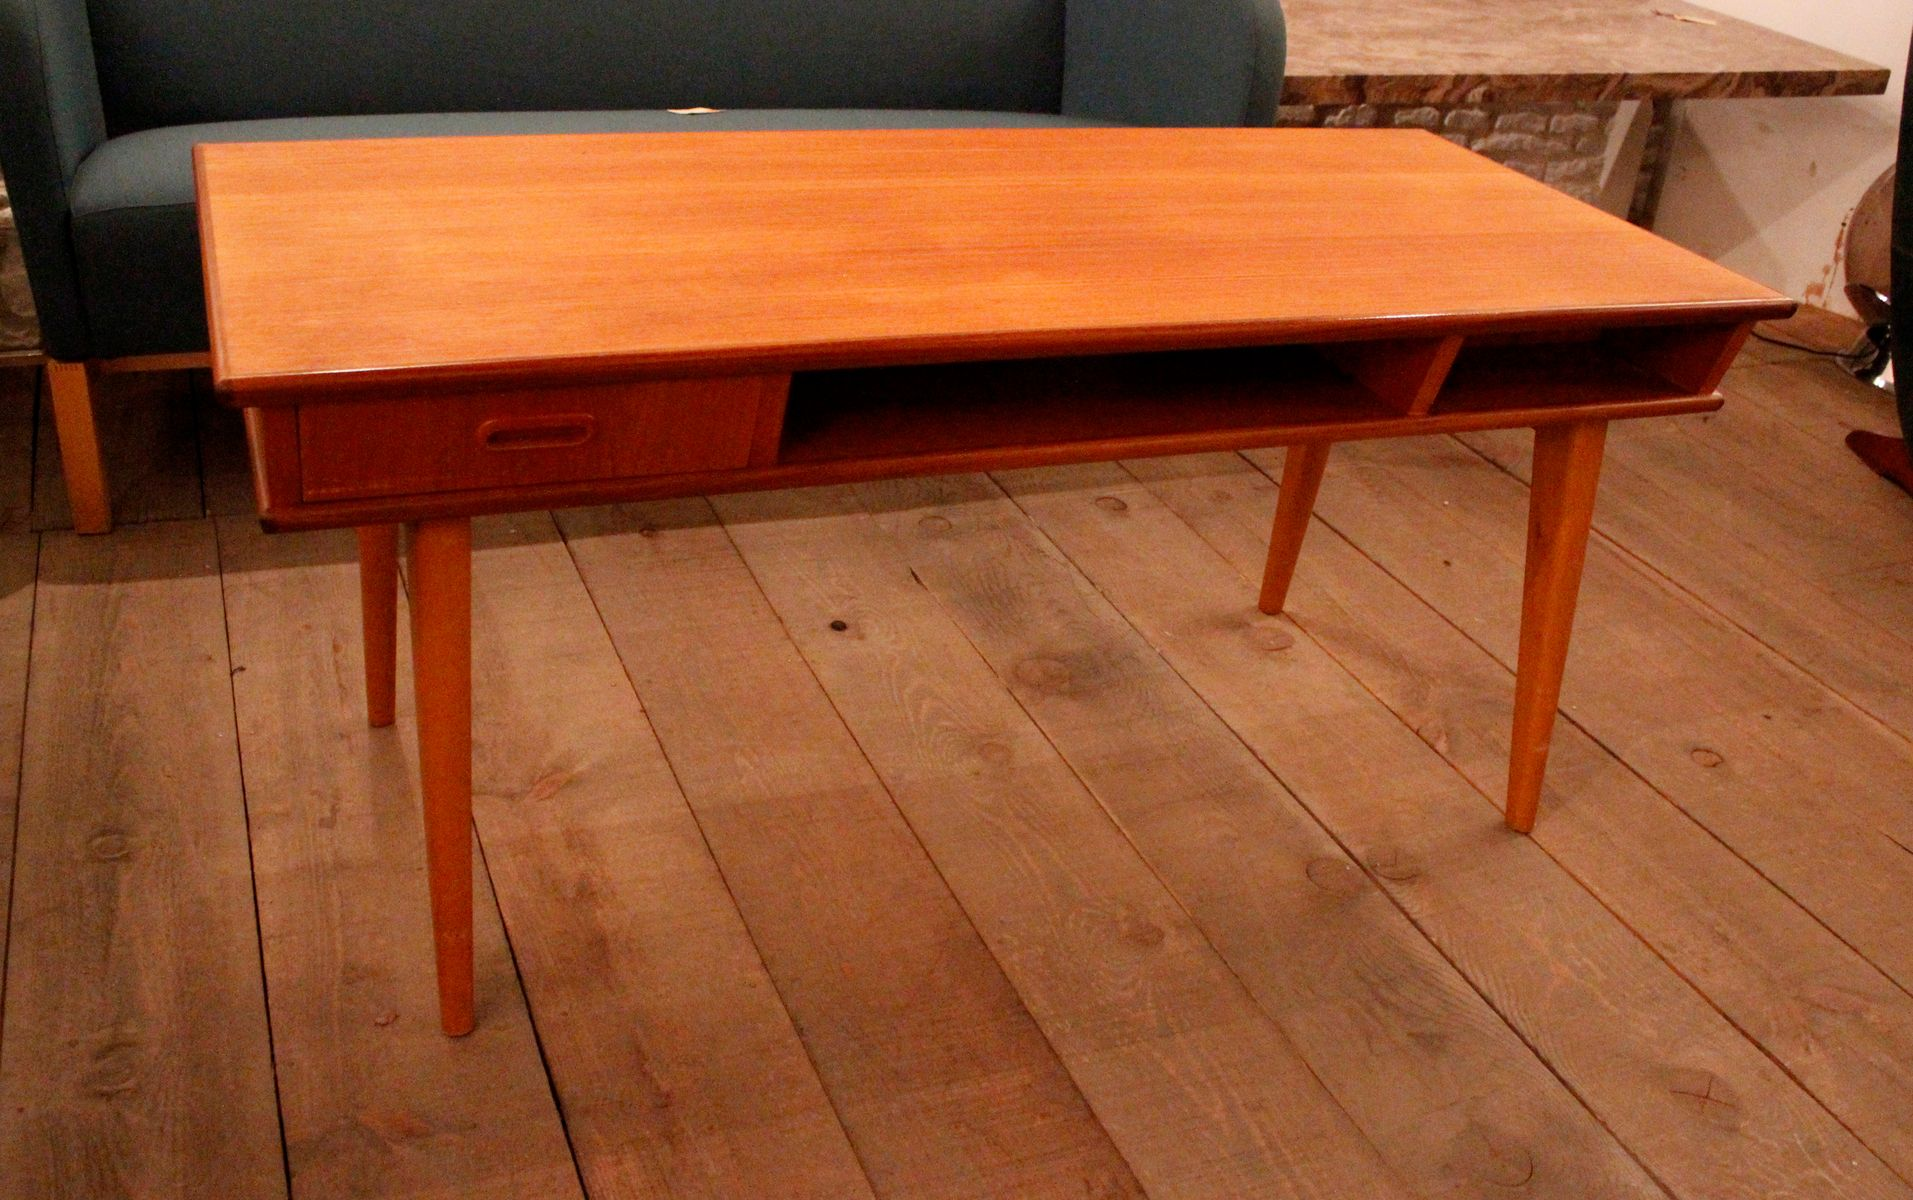 Teak Coffee Table with Double Drawers 1950s for sale at